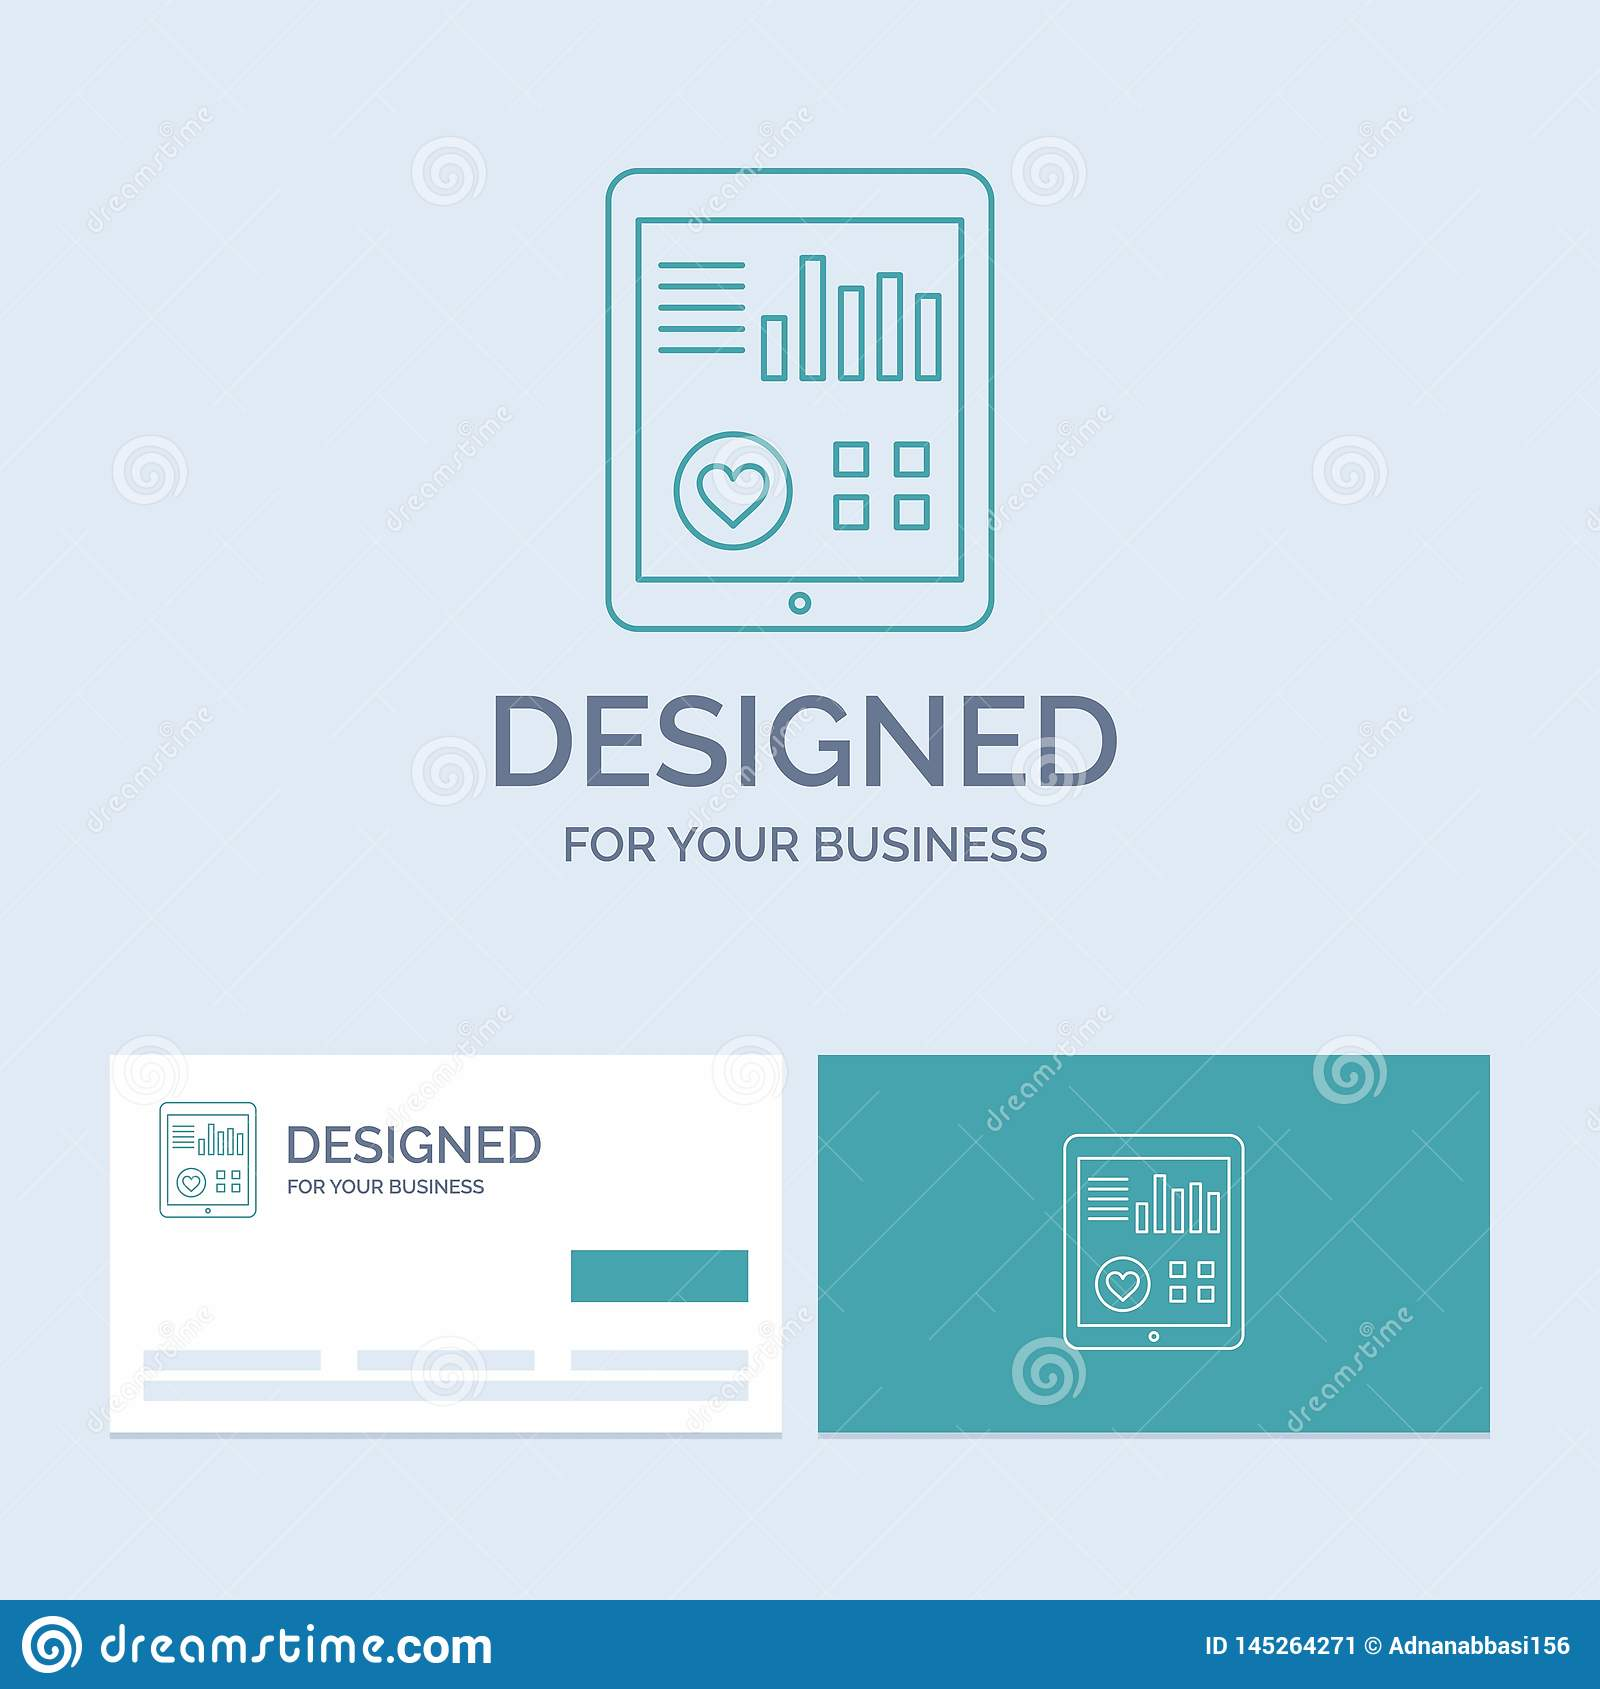 monitoring, health, heart, pulse, Patient Report Business Logo Line Icon Symbol for your business. Turquoise Business Cards with